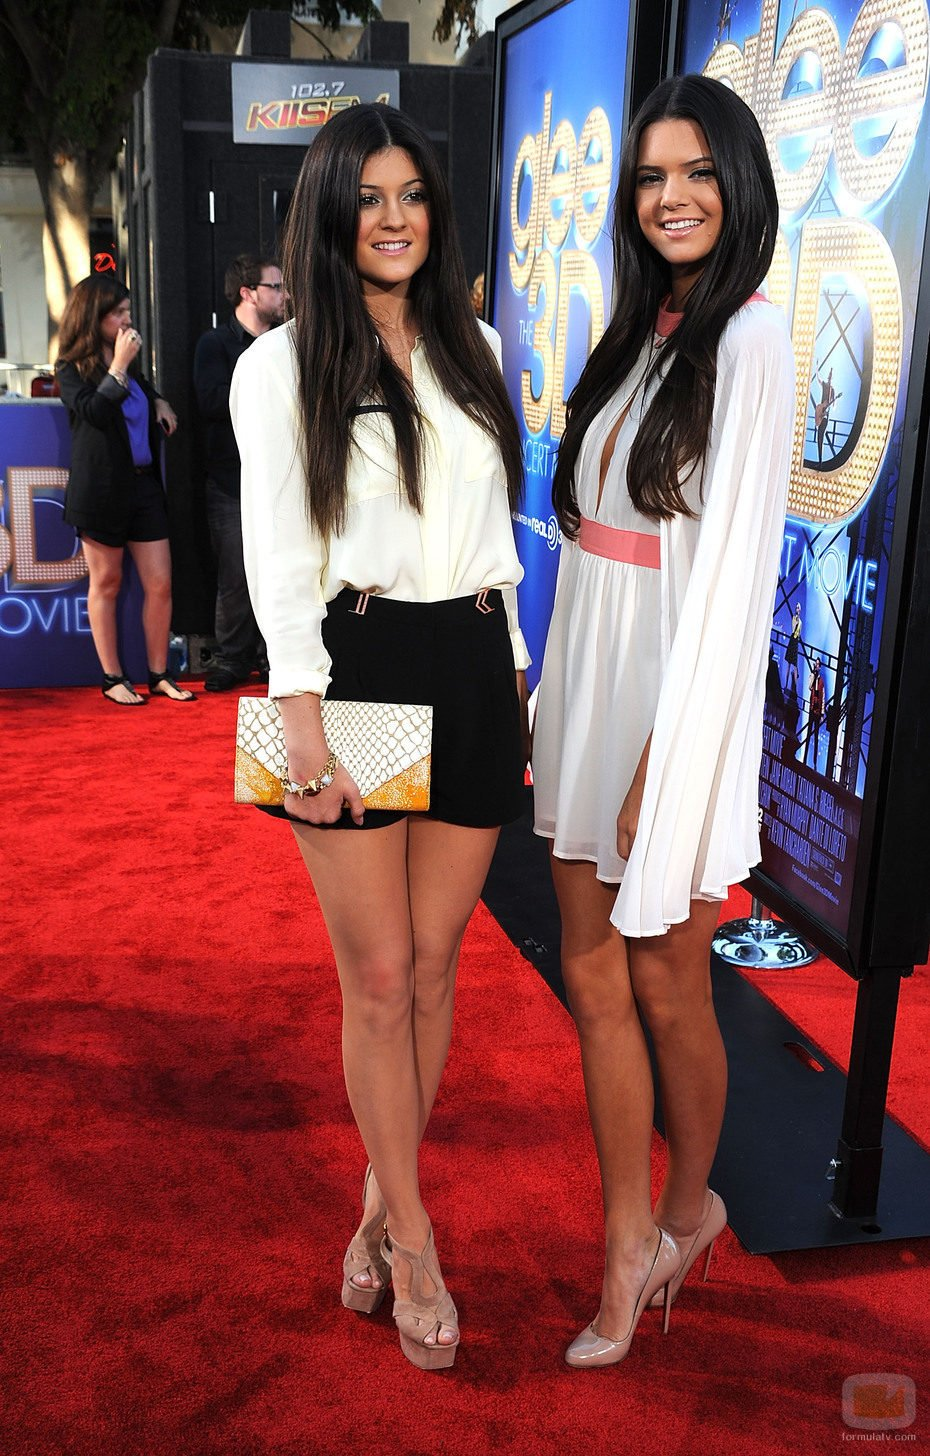 Kylie y Kendal Jenner en el estreno de 'Glee: The 3D Movie Concert'